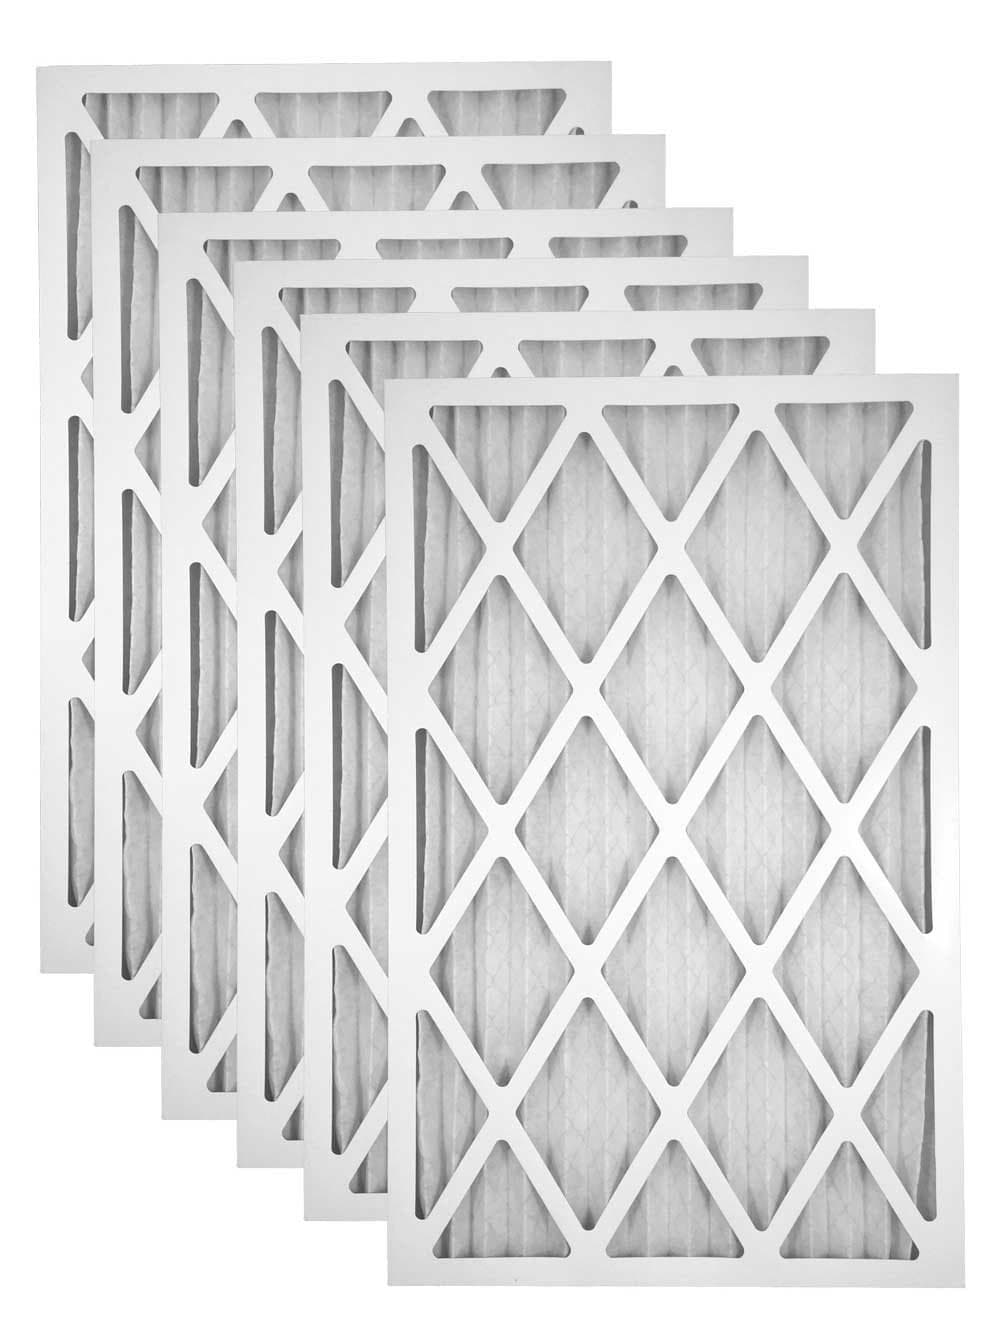 22x22x1 Merv 13 Pleated AC Furnace Filter - Case of 6 by Atomic Filters